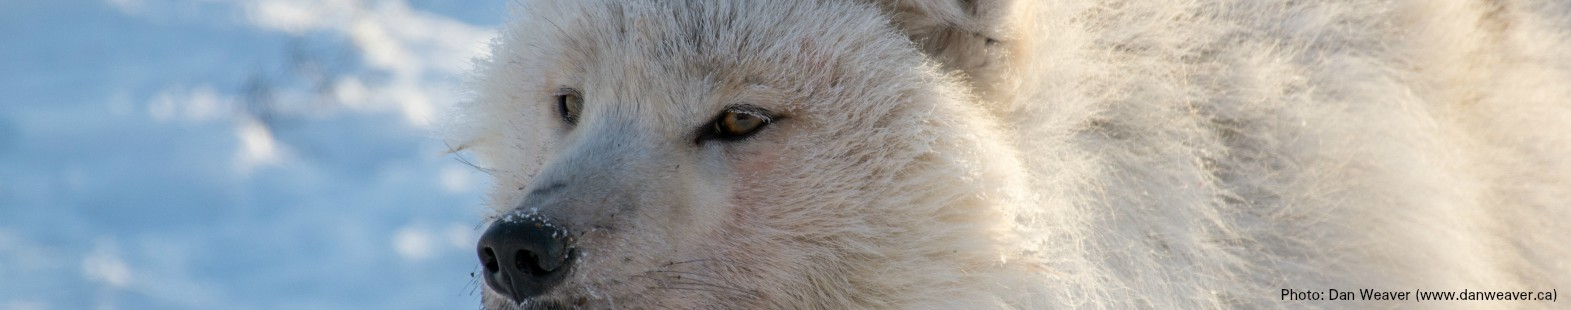 Photograph of the face of an adult Arctic wolf. Call for abstracts for ArcticNET Arctic Change Meeting in December 2017.